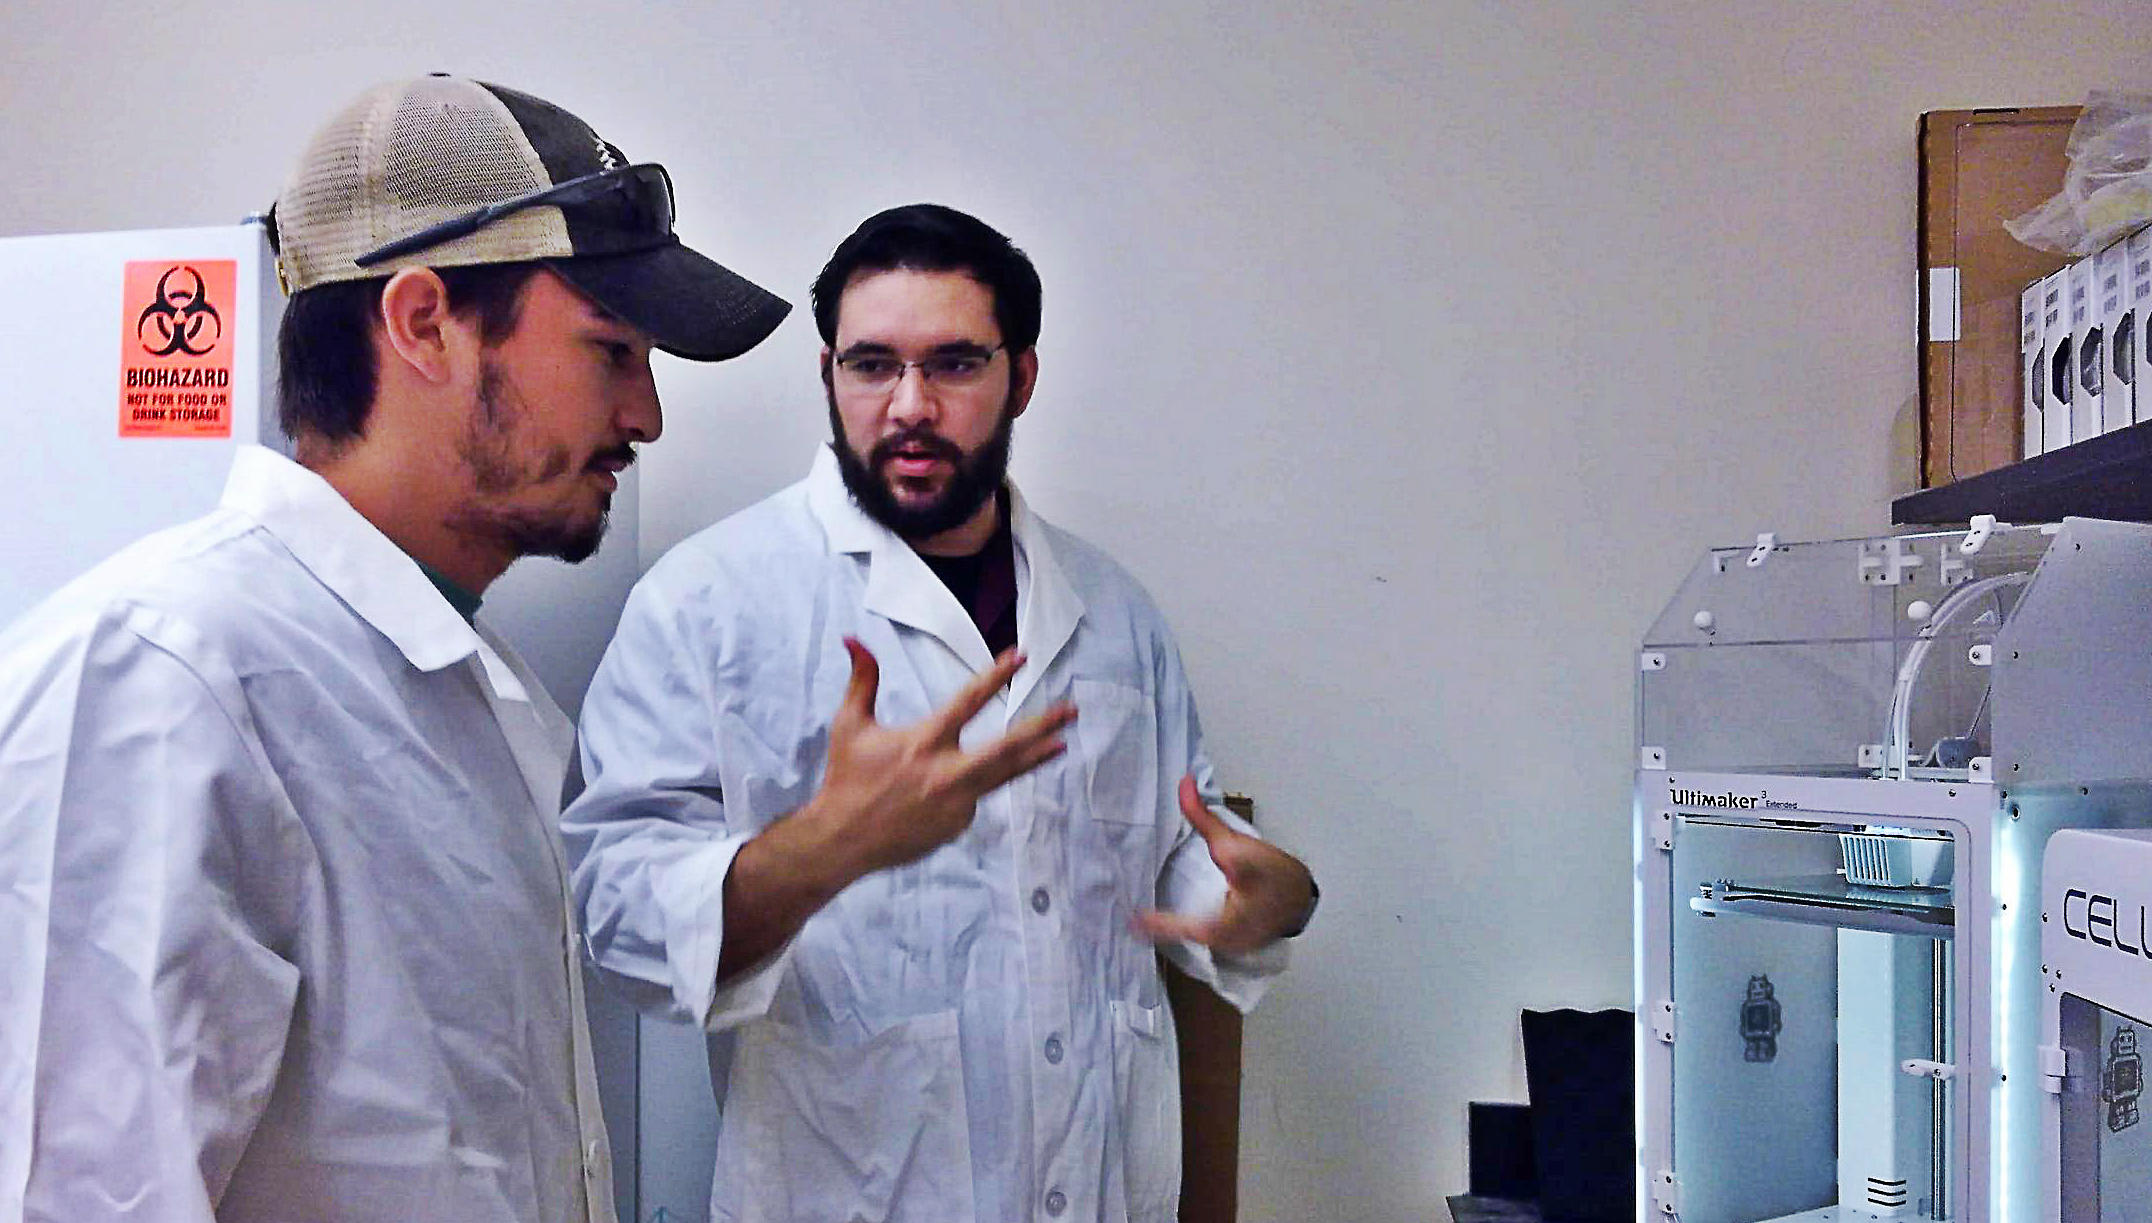 San Antonio Researchers Developing 3d Implants For Cancer